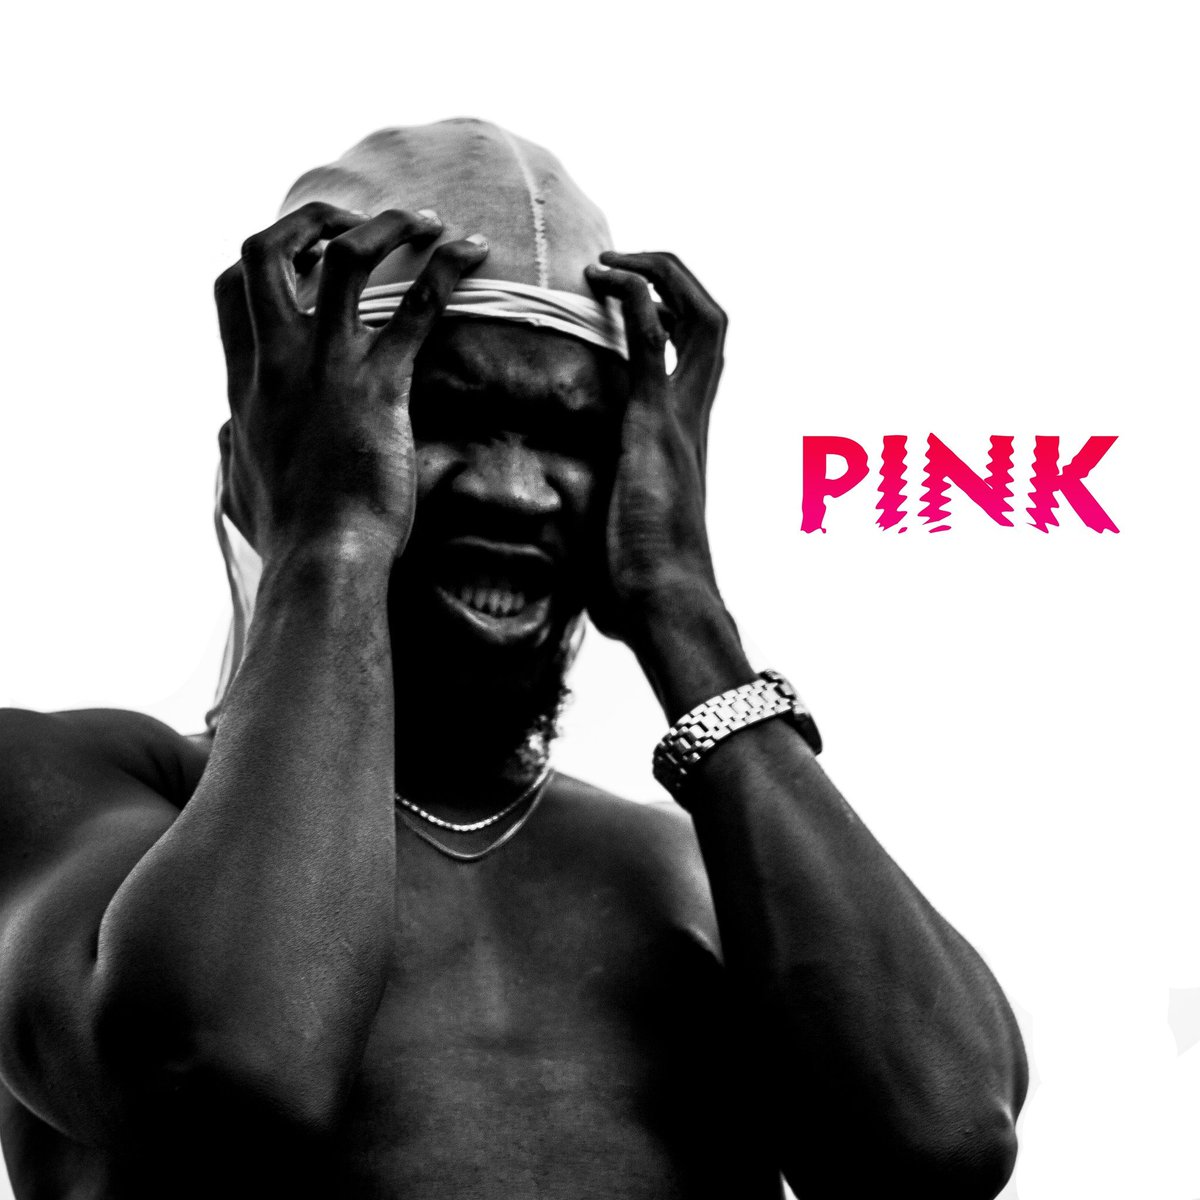 The talented kid @OmaMahmud has a new project out called #PINK. Please check on it. <br>http://pic.twitter.com/RMRGbrABRV